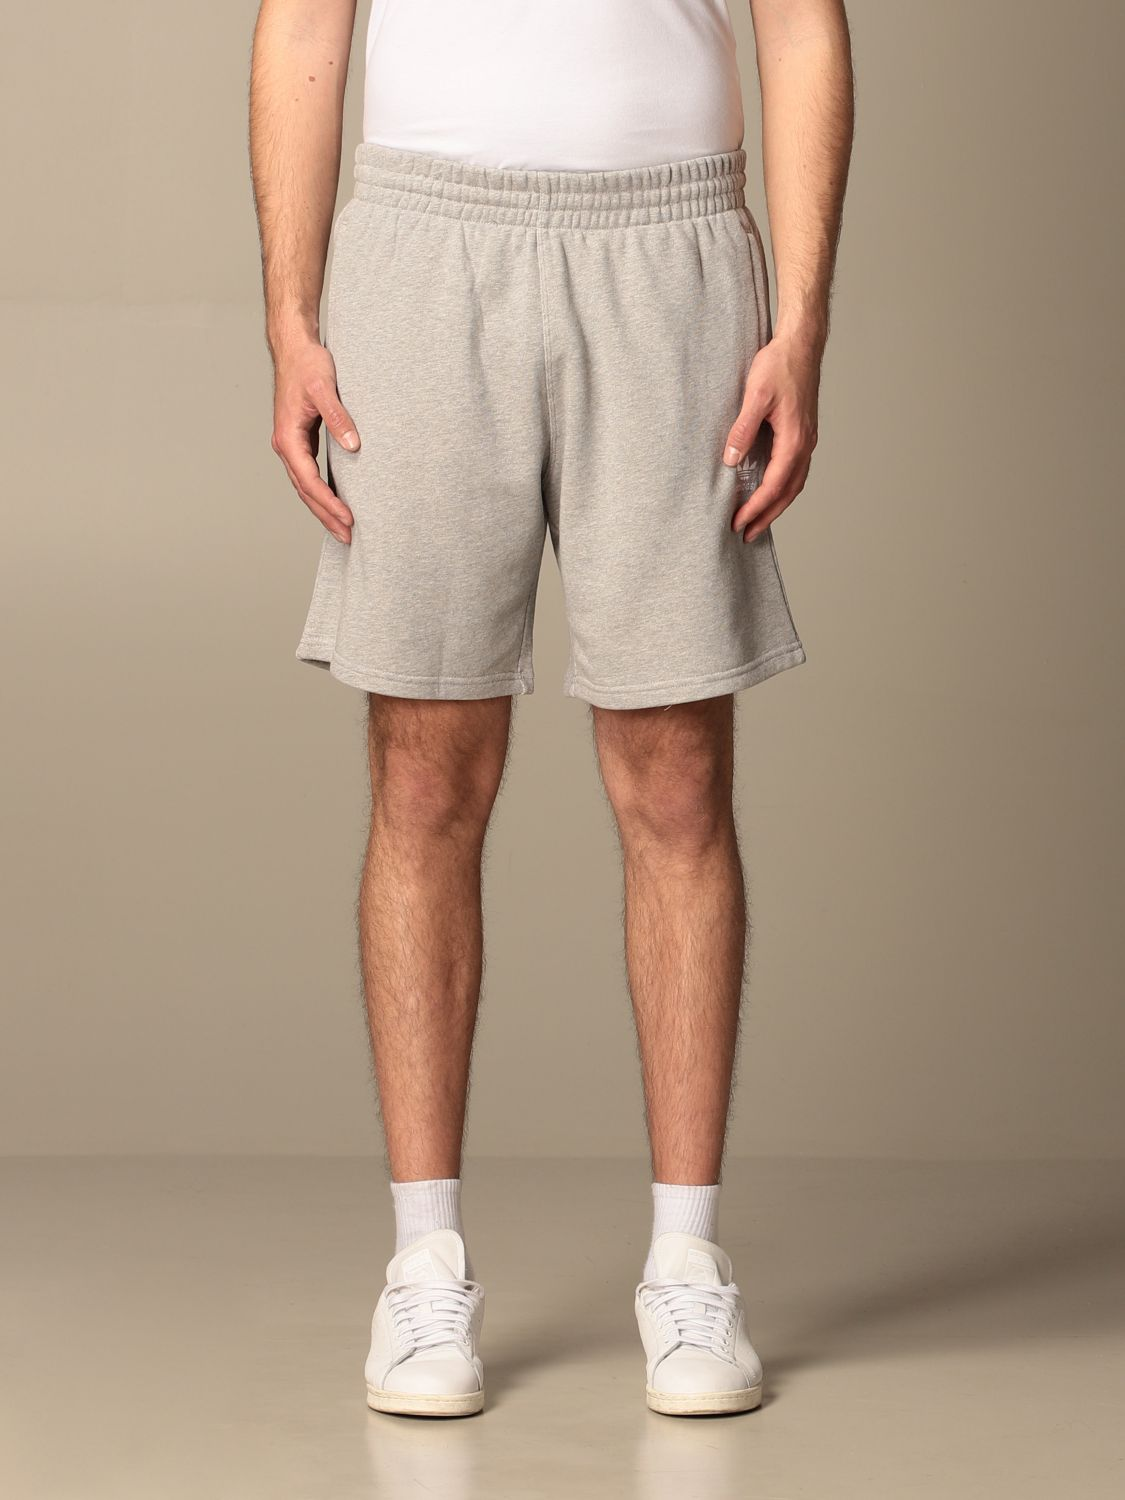 Short Adidas Originals: Adidas Originals jogging shorts with logo grey 1